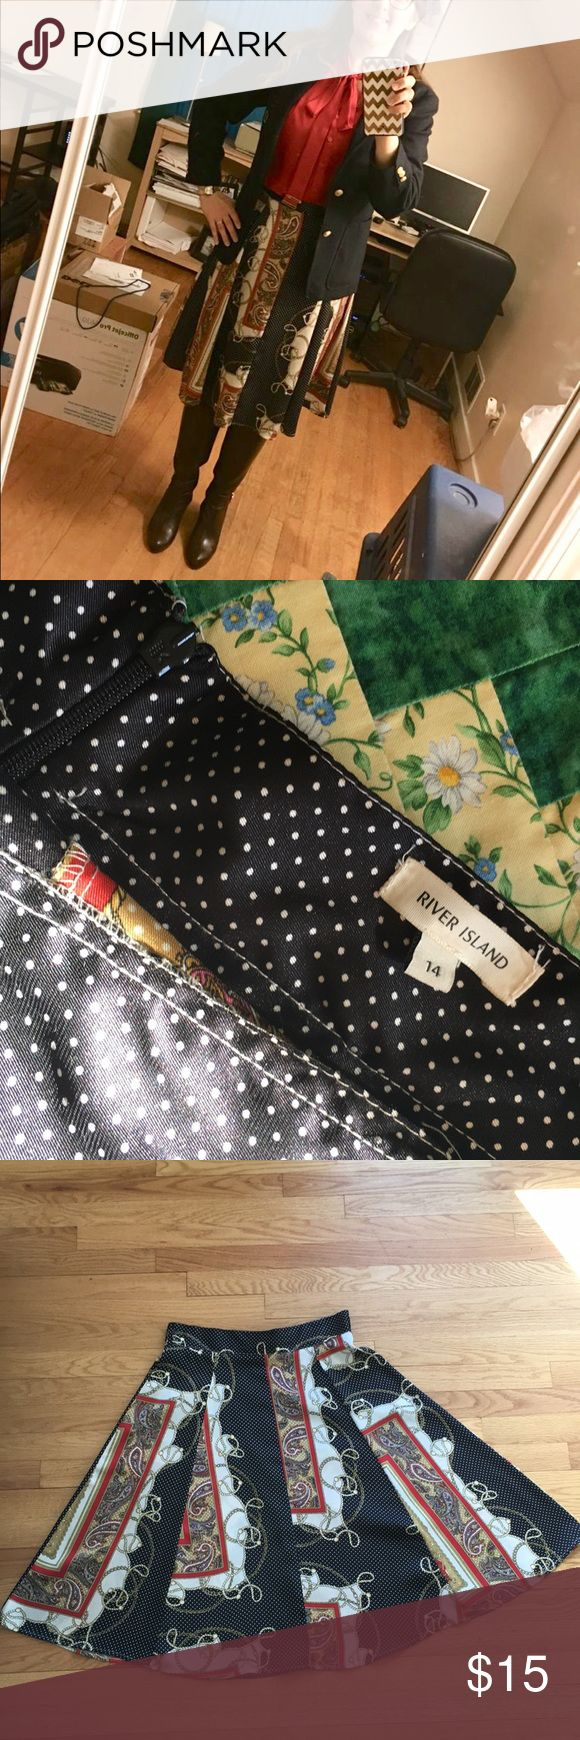 River Island midi skirt Flowy midi skirt with mixed pattern (paisley, polka dot, chain). Silky material. This is River Island UK brand, so tag size is 14 which converts to American 10. Waist measured approximately 32 inches. Hidden back zipper closure and 2 side belt loops. River Island Skirts Midi